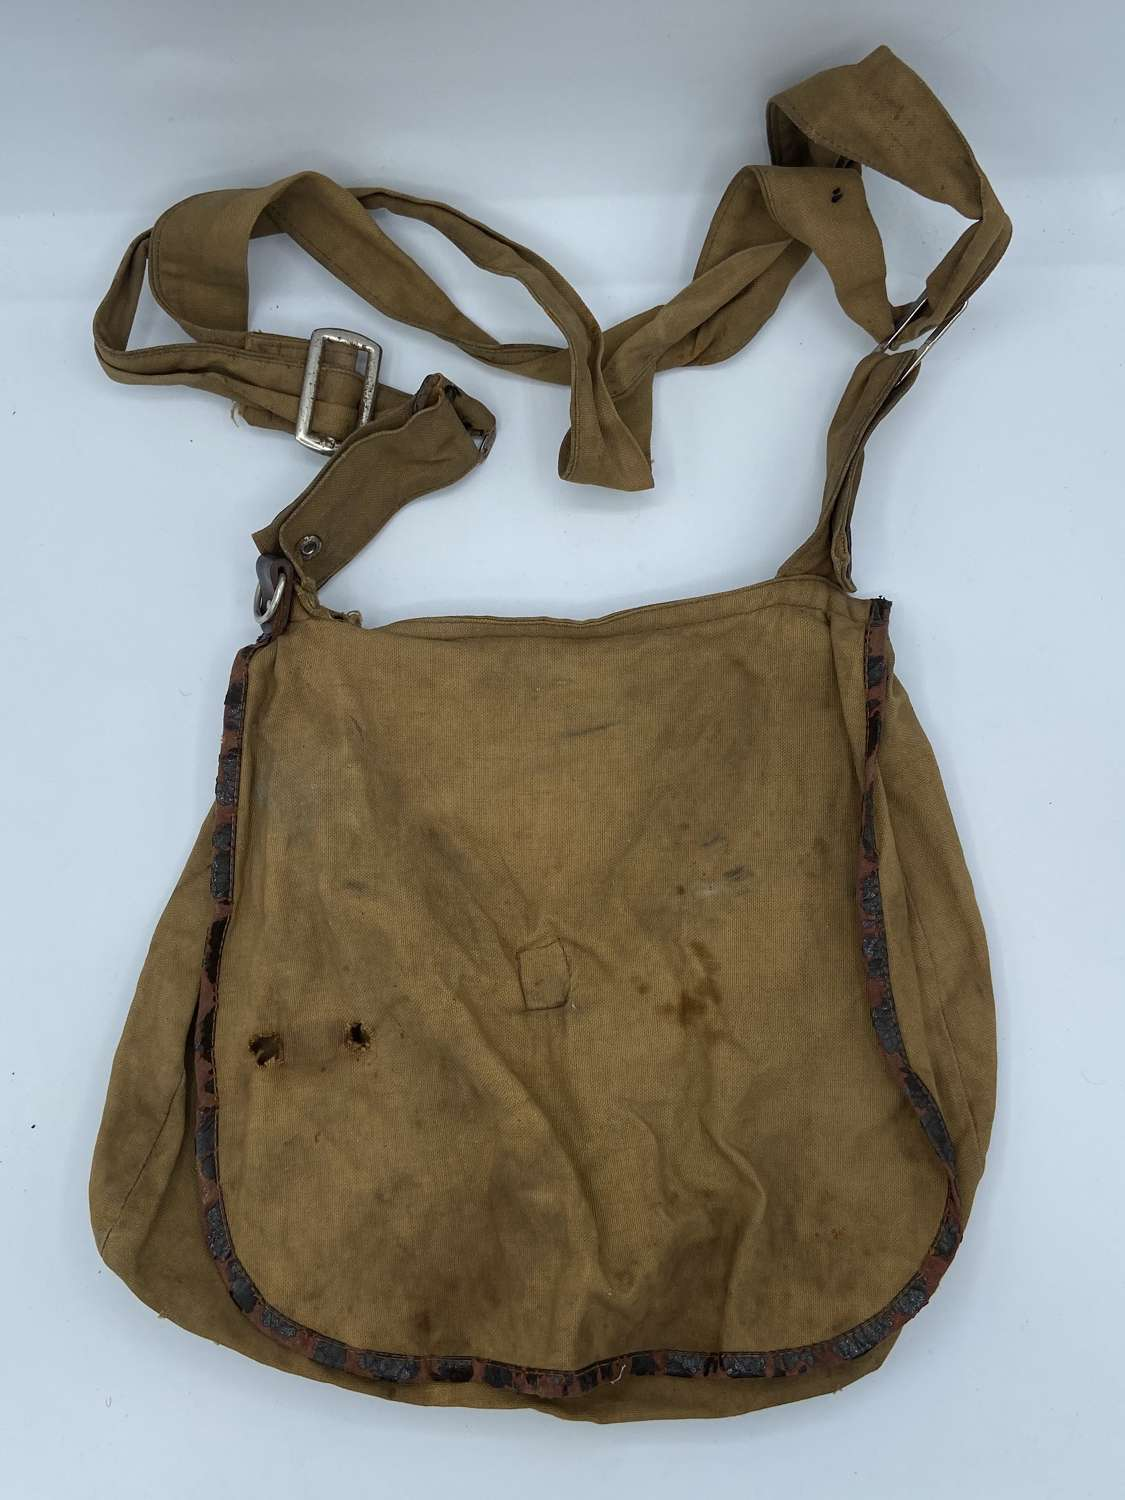 Late WW2 German Hitler Jugend Bread Bag With Strap